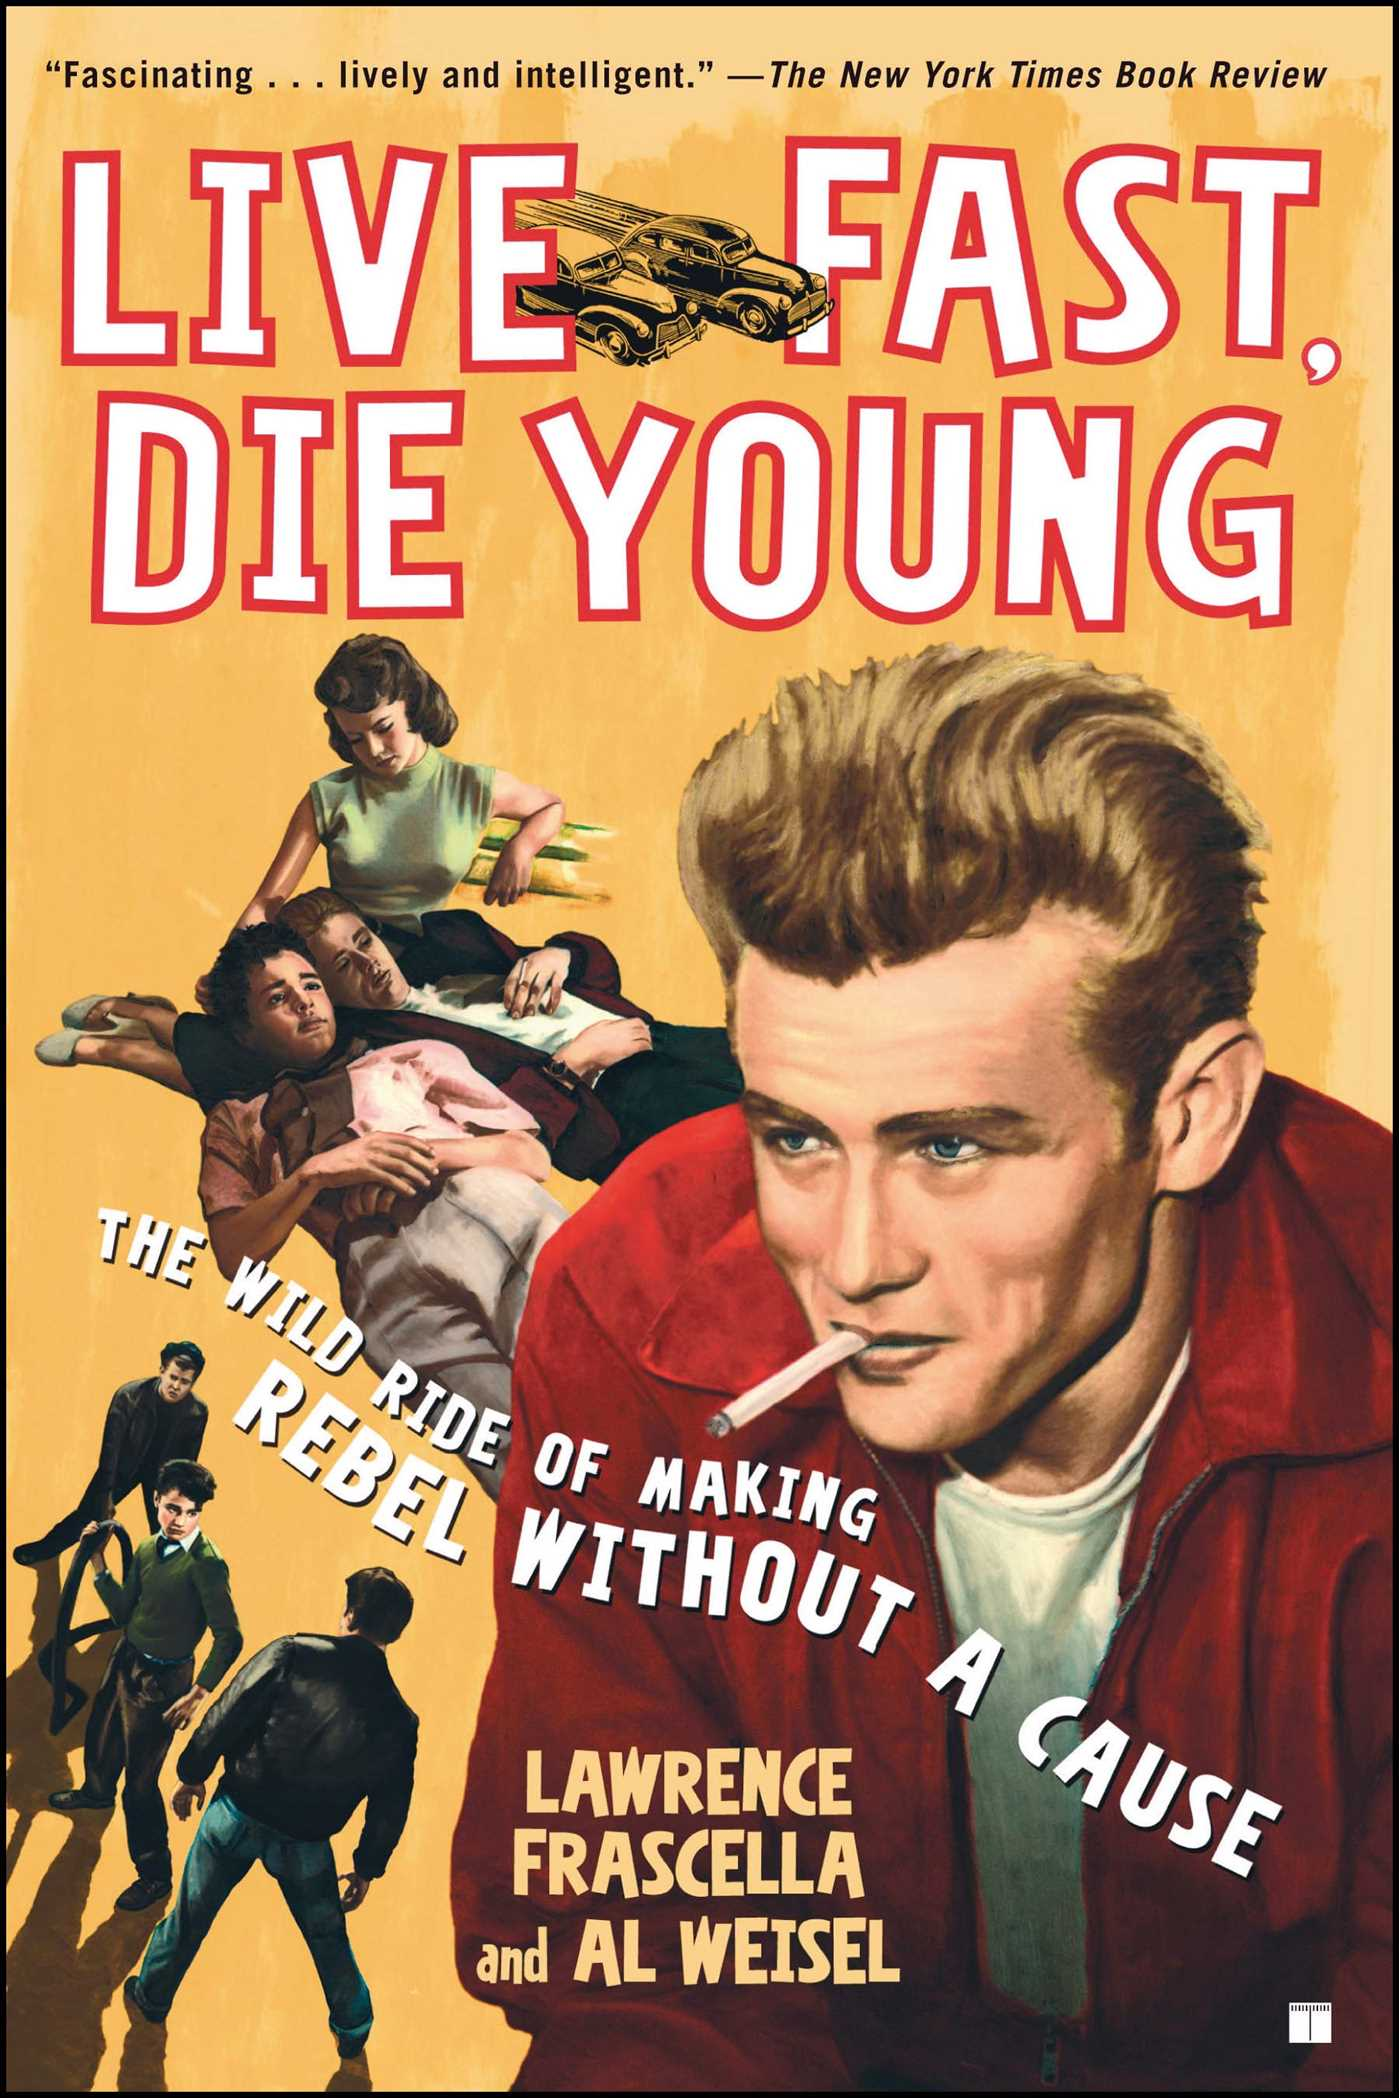 live fast die young book by lawrence frascella al